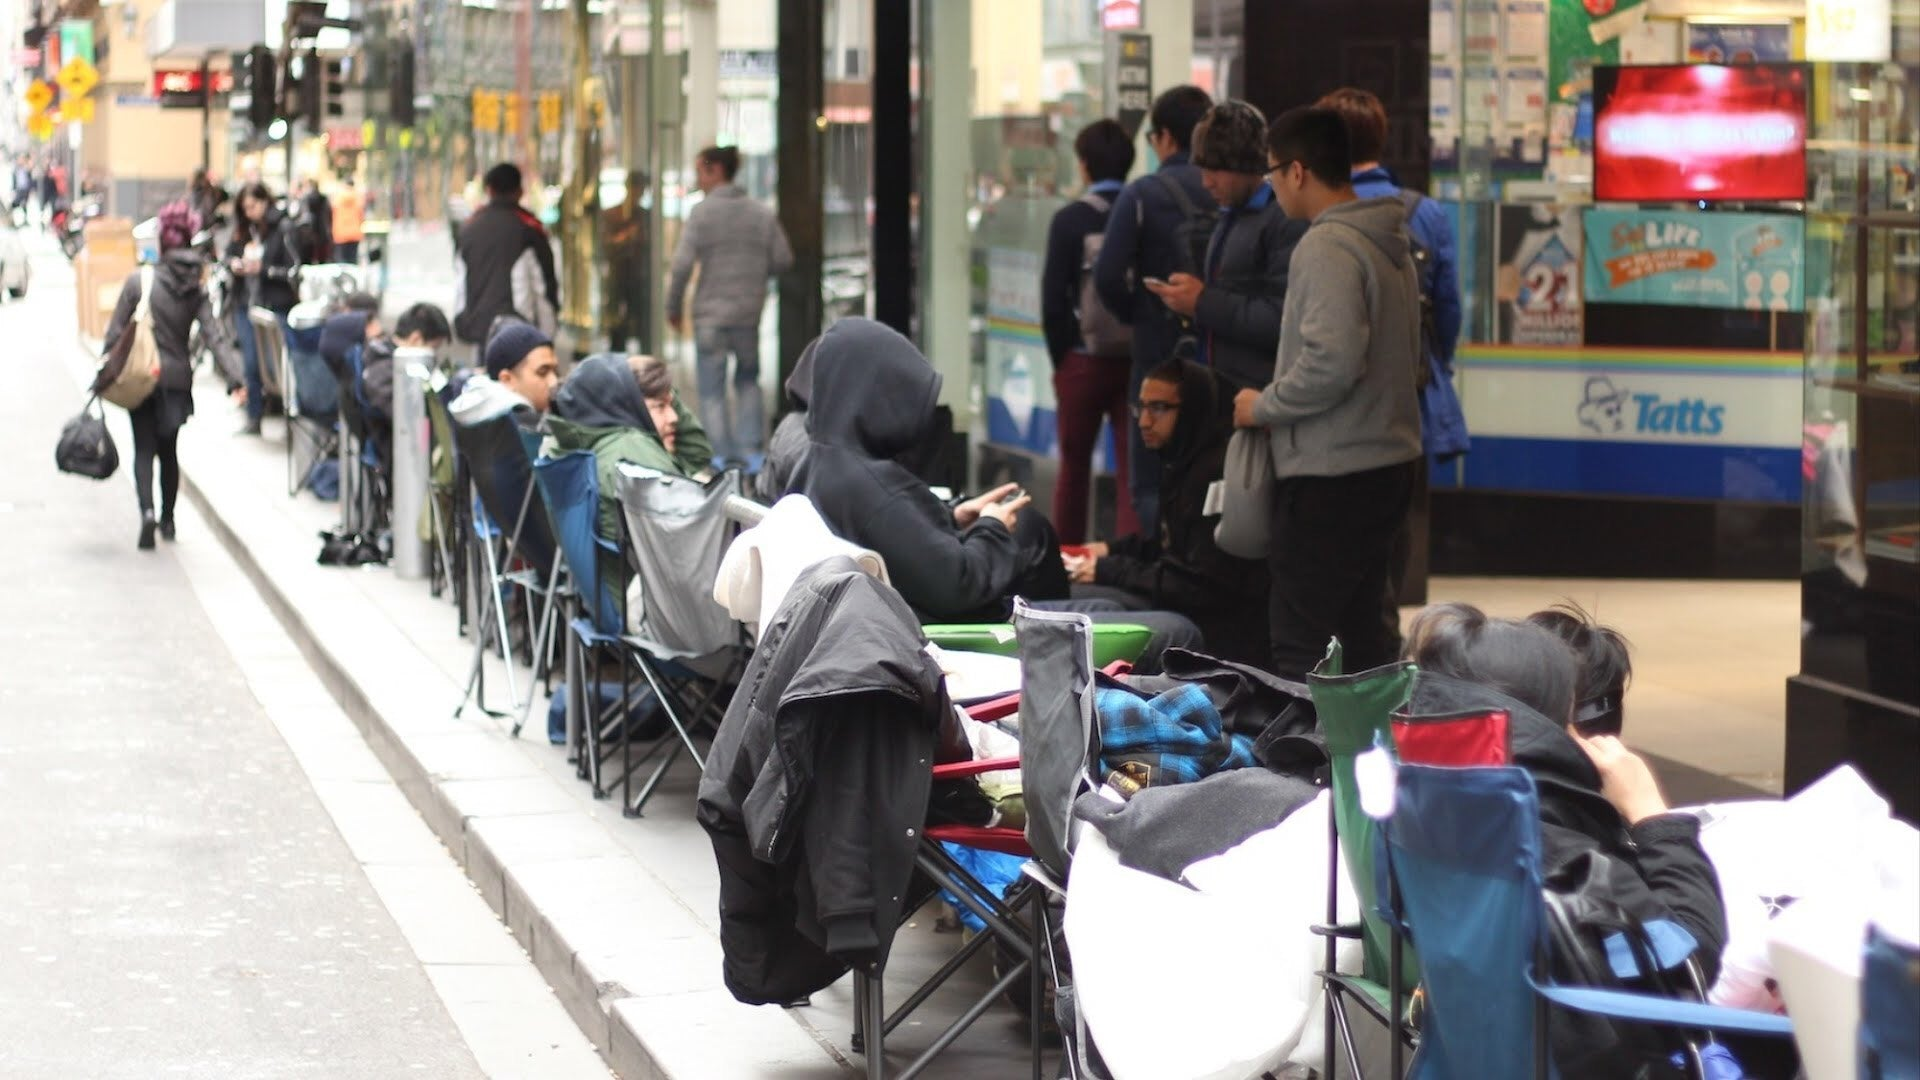 People in Australia waiting to buy Yeezys